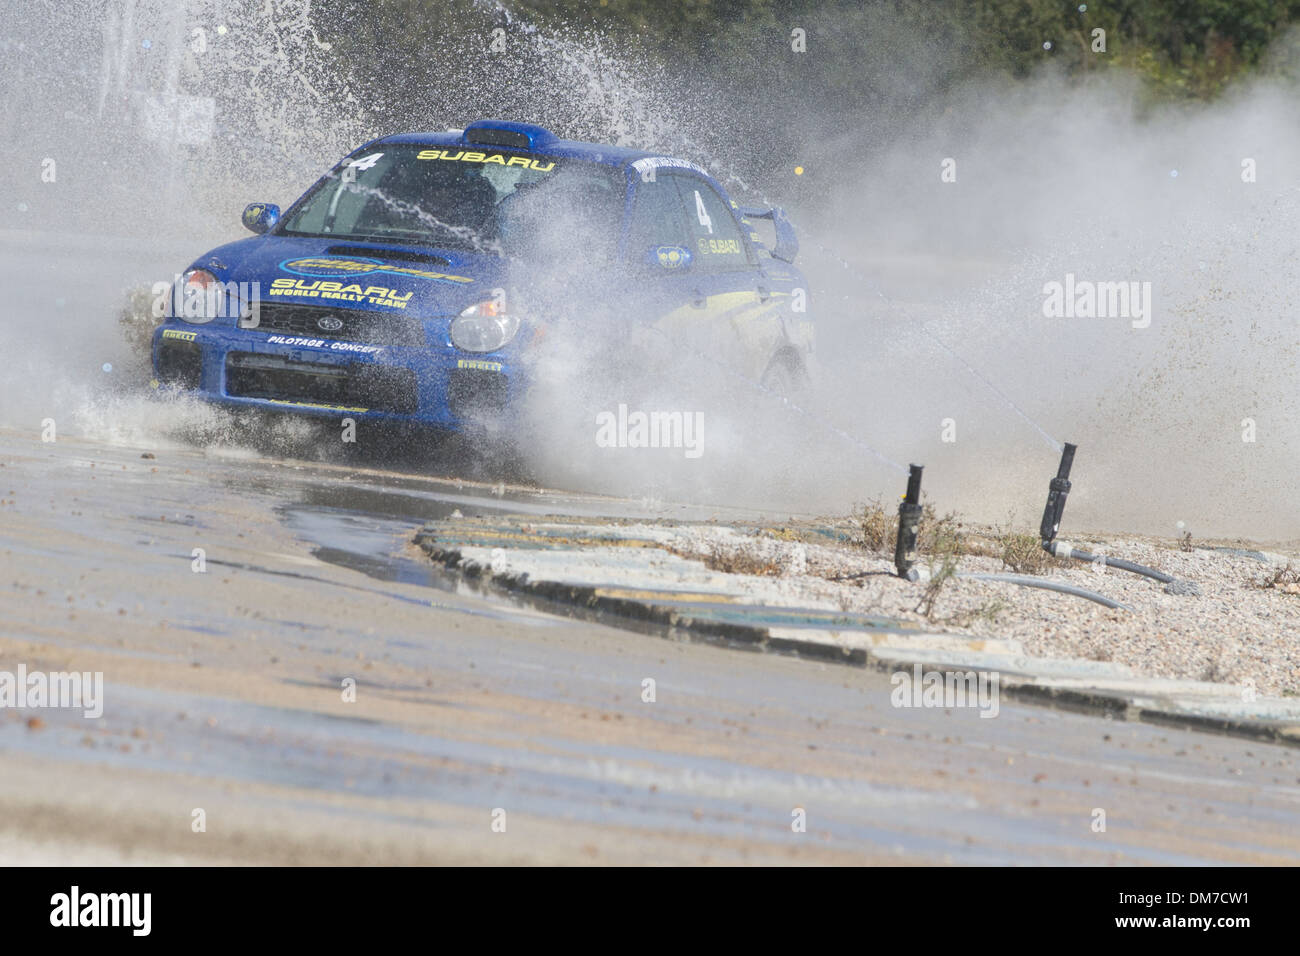 SUBARU SKIDDING ON THE WET RACE TRACK, PRO'PULSION, GT-RALLYE COURSES ON A RACE TRACK, DREUX, EURE-ET-LOIR (28), FRANCE - Stock Image